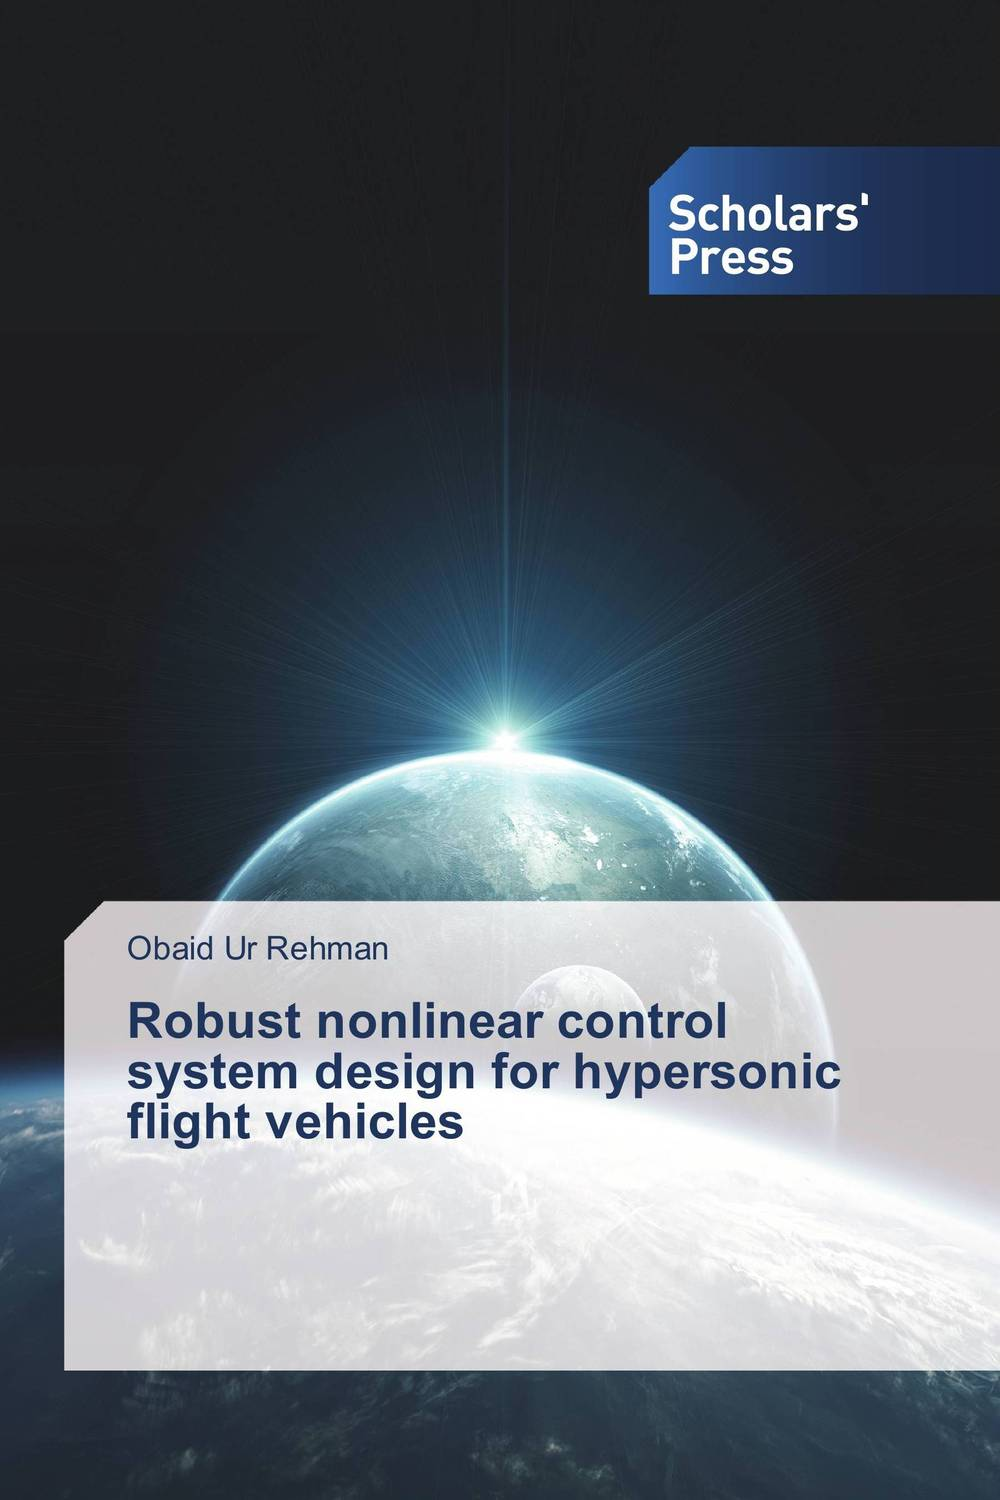 Robust nonlinear control system design for hypersonic flight vehicles